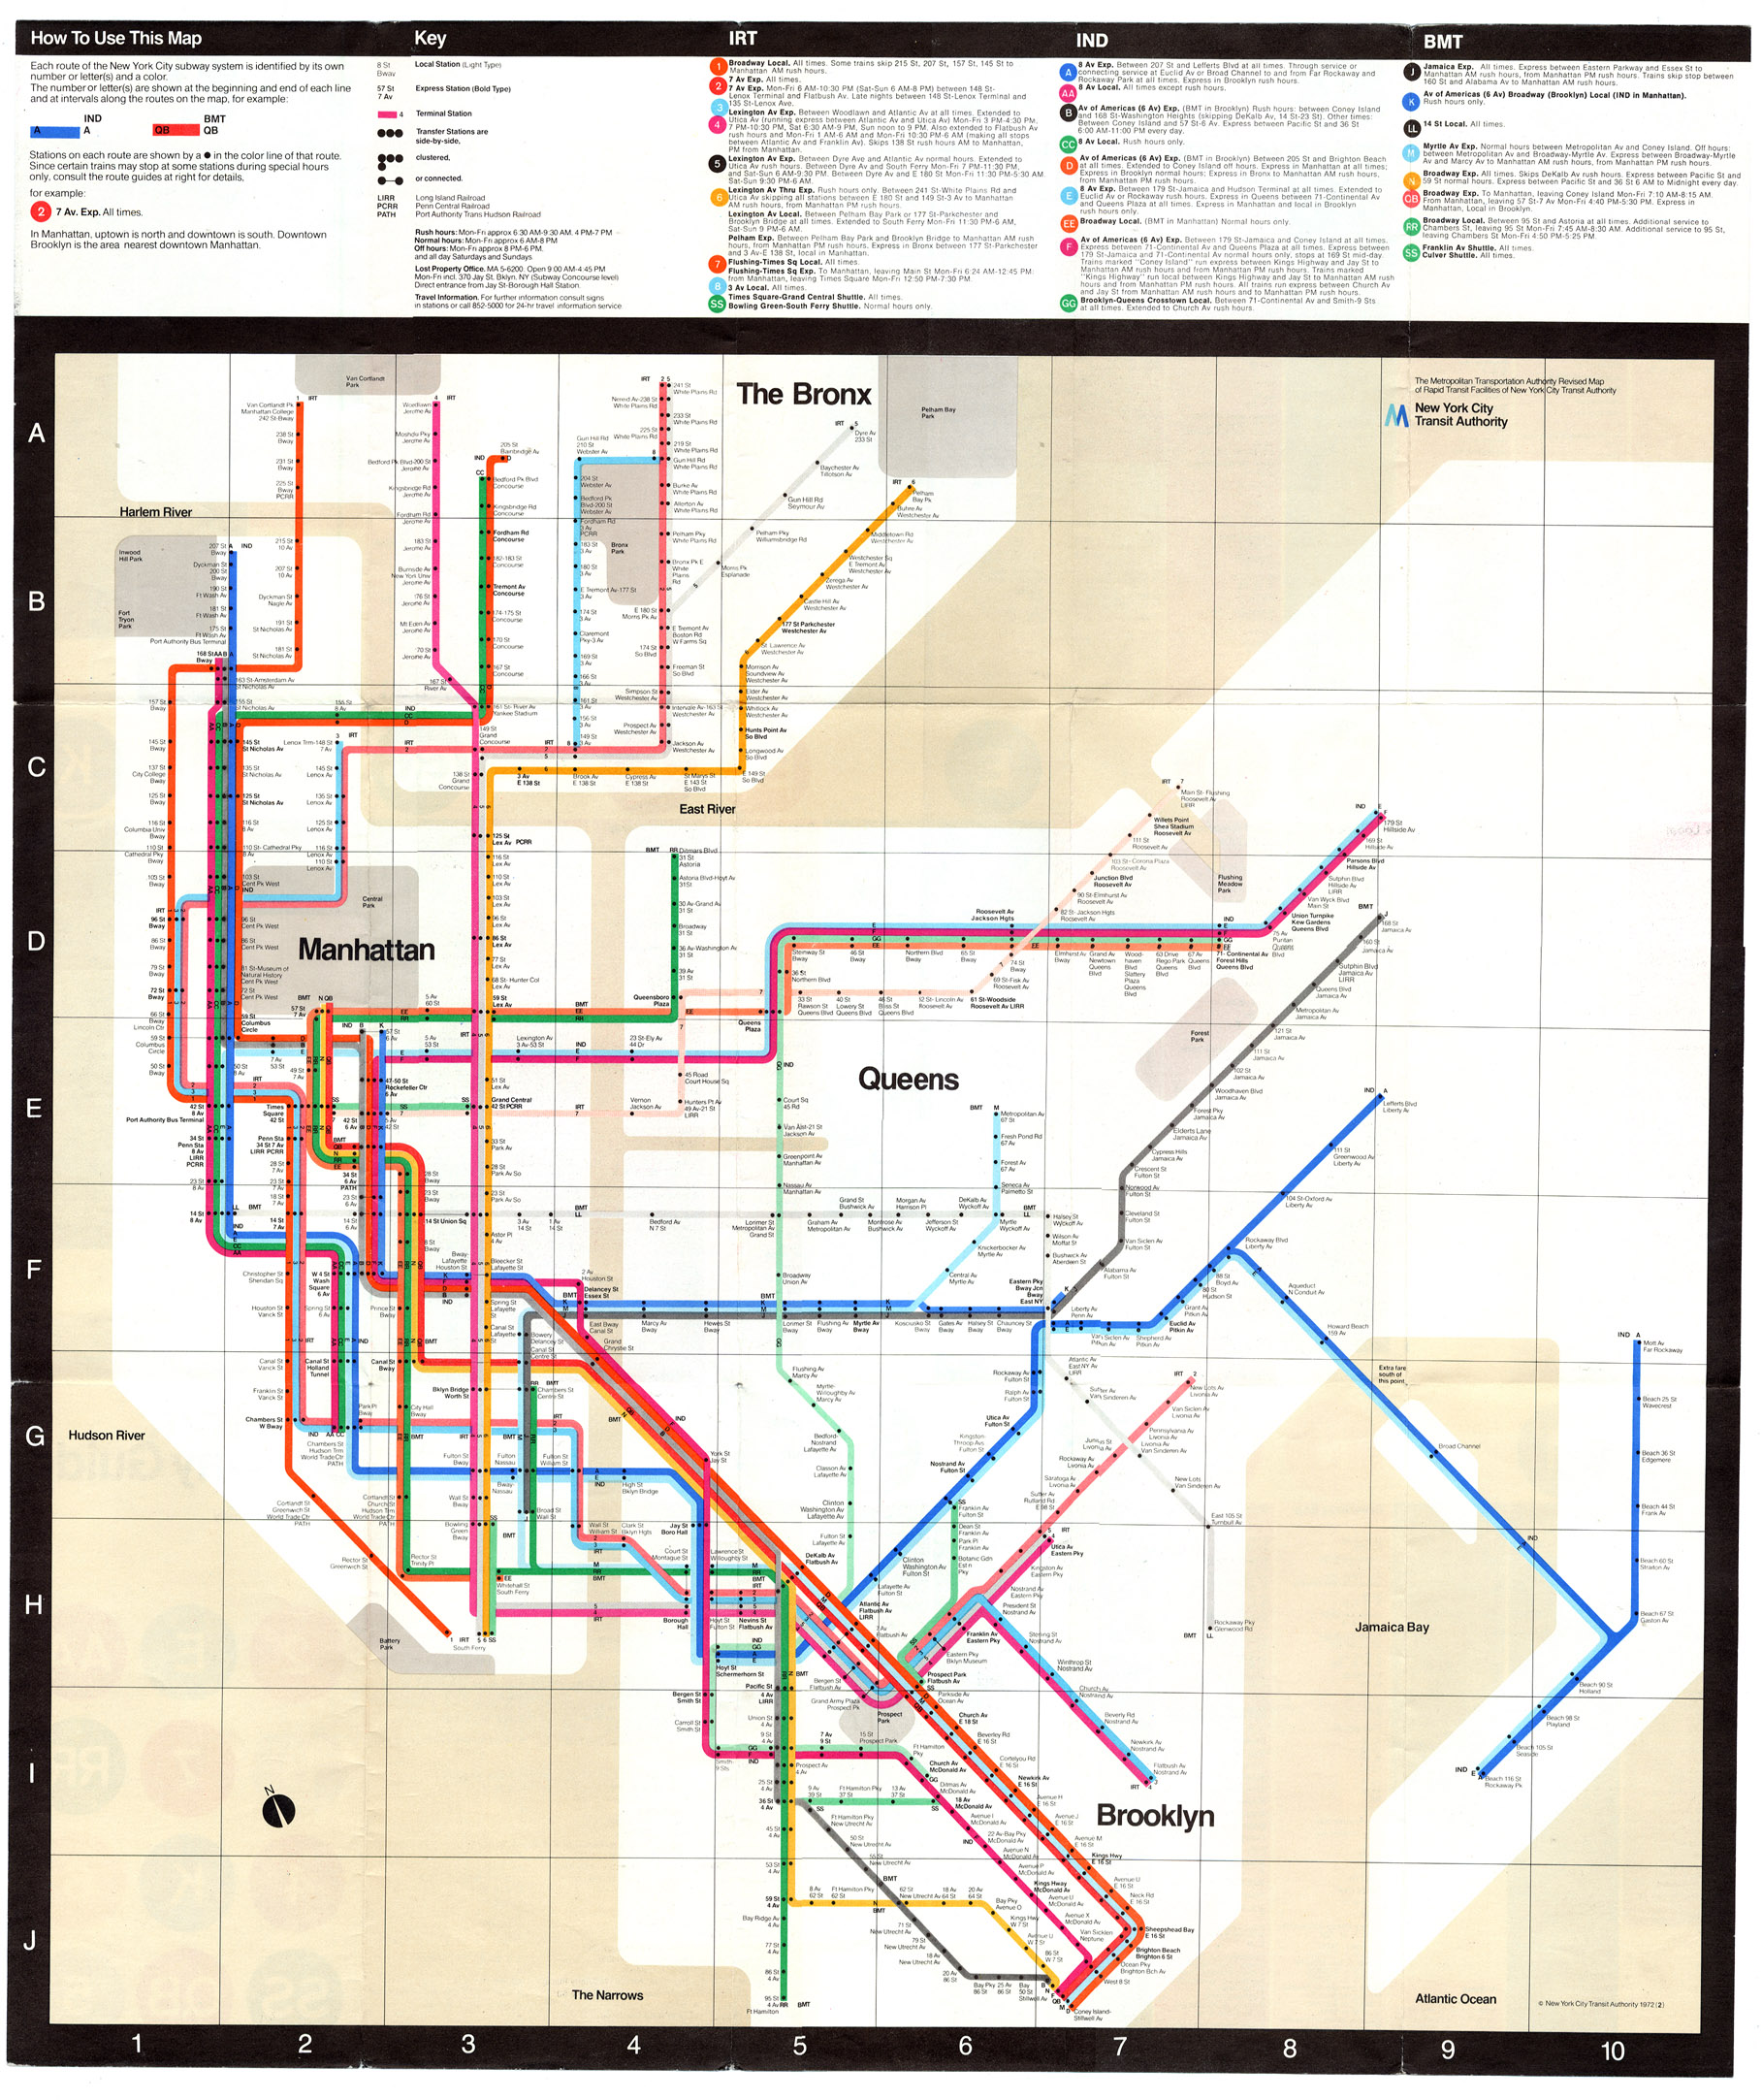 Subway Map Nyc Mta Download.Designing The New York City Subway Map Urban Omnibus